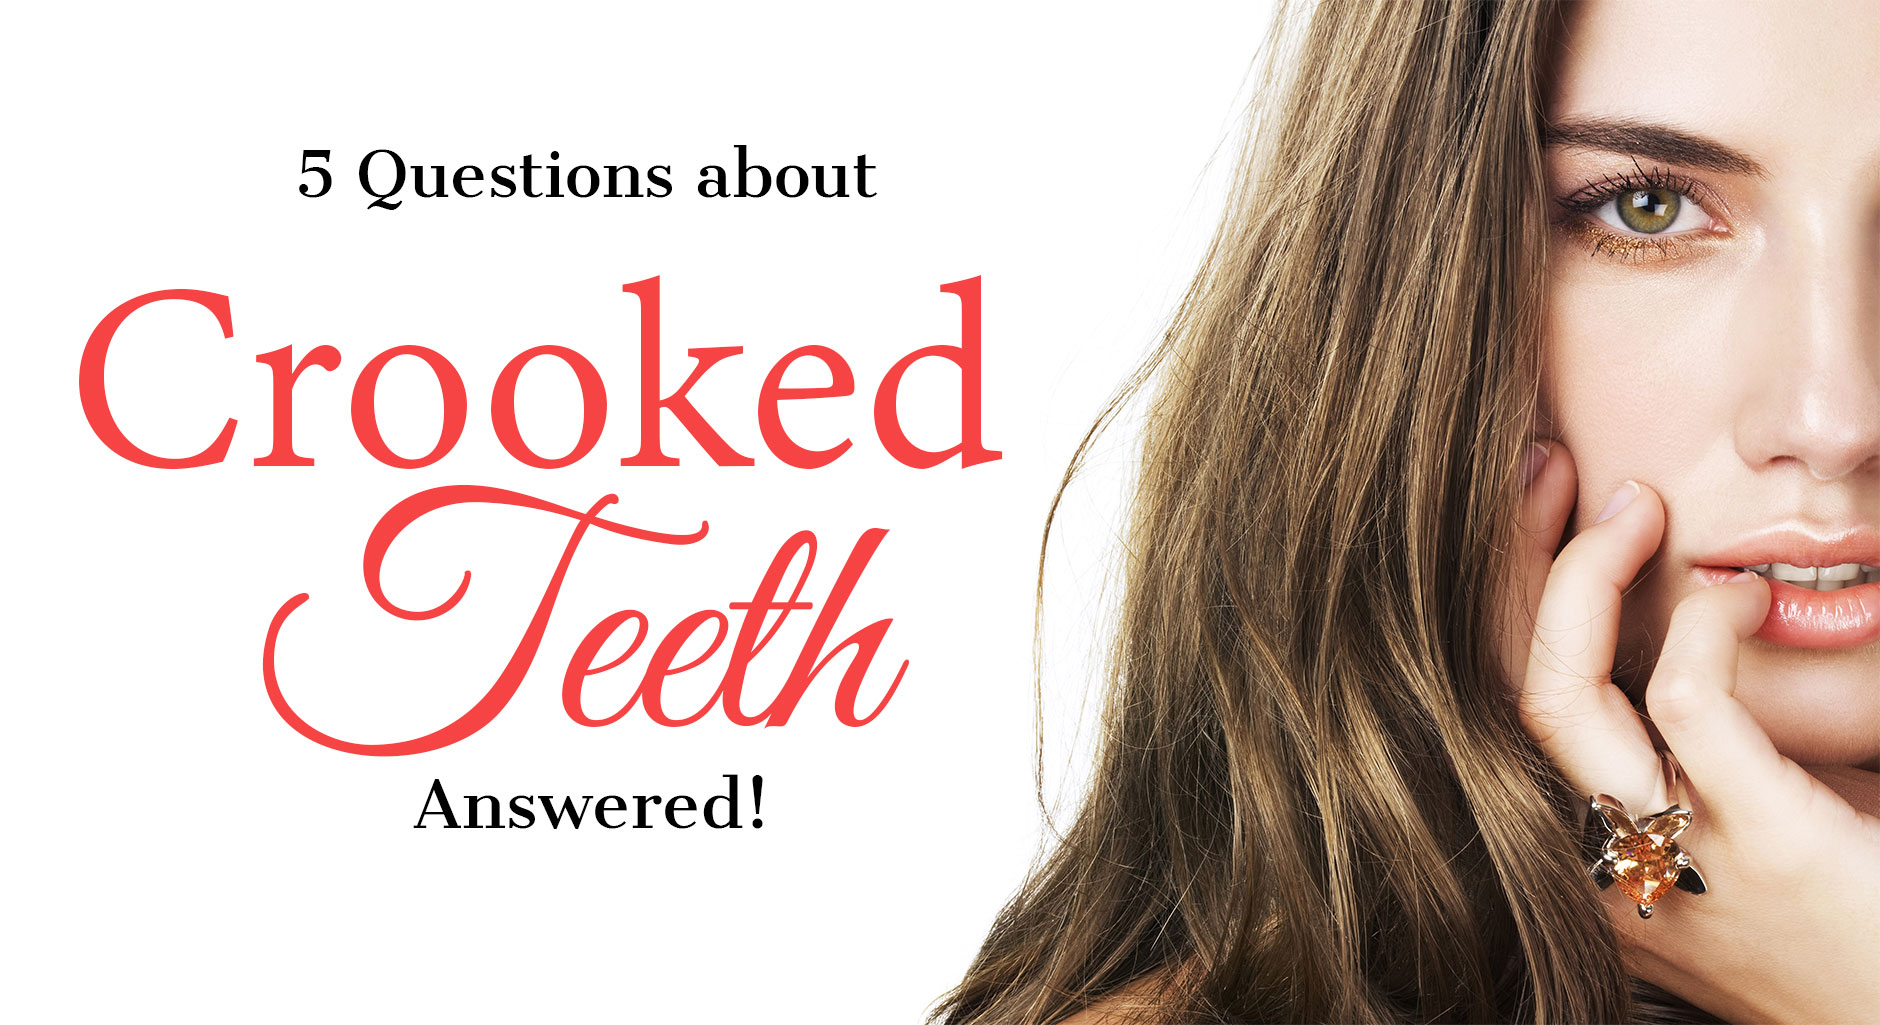 5 Questions about Crooked Teeth Answered